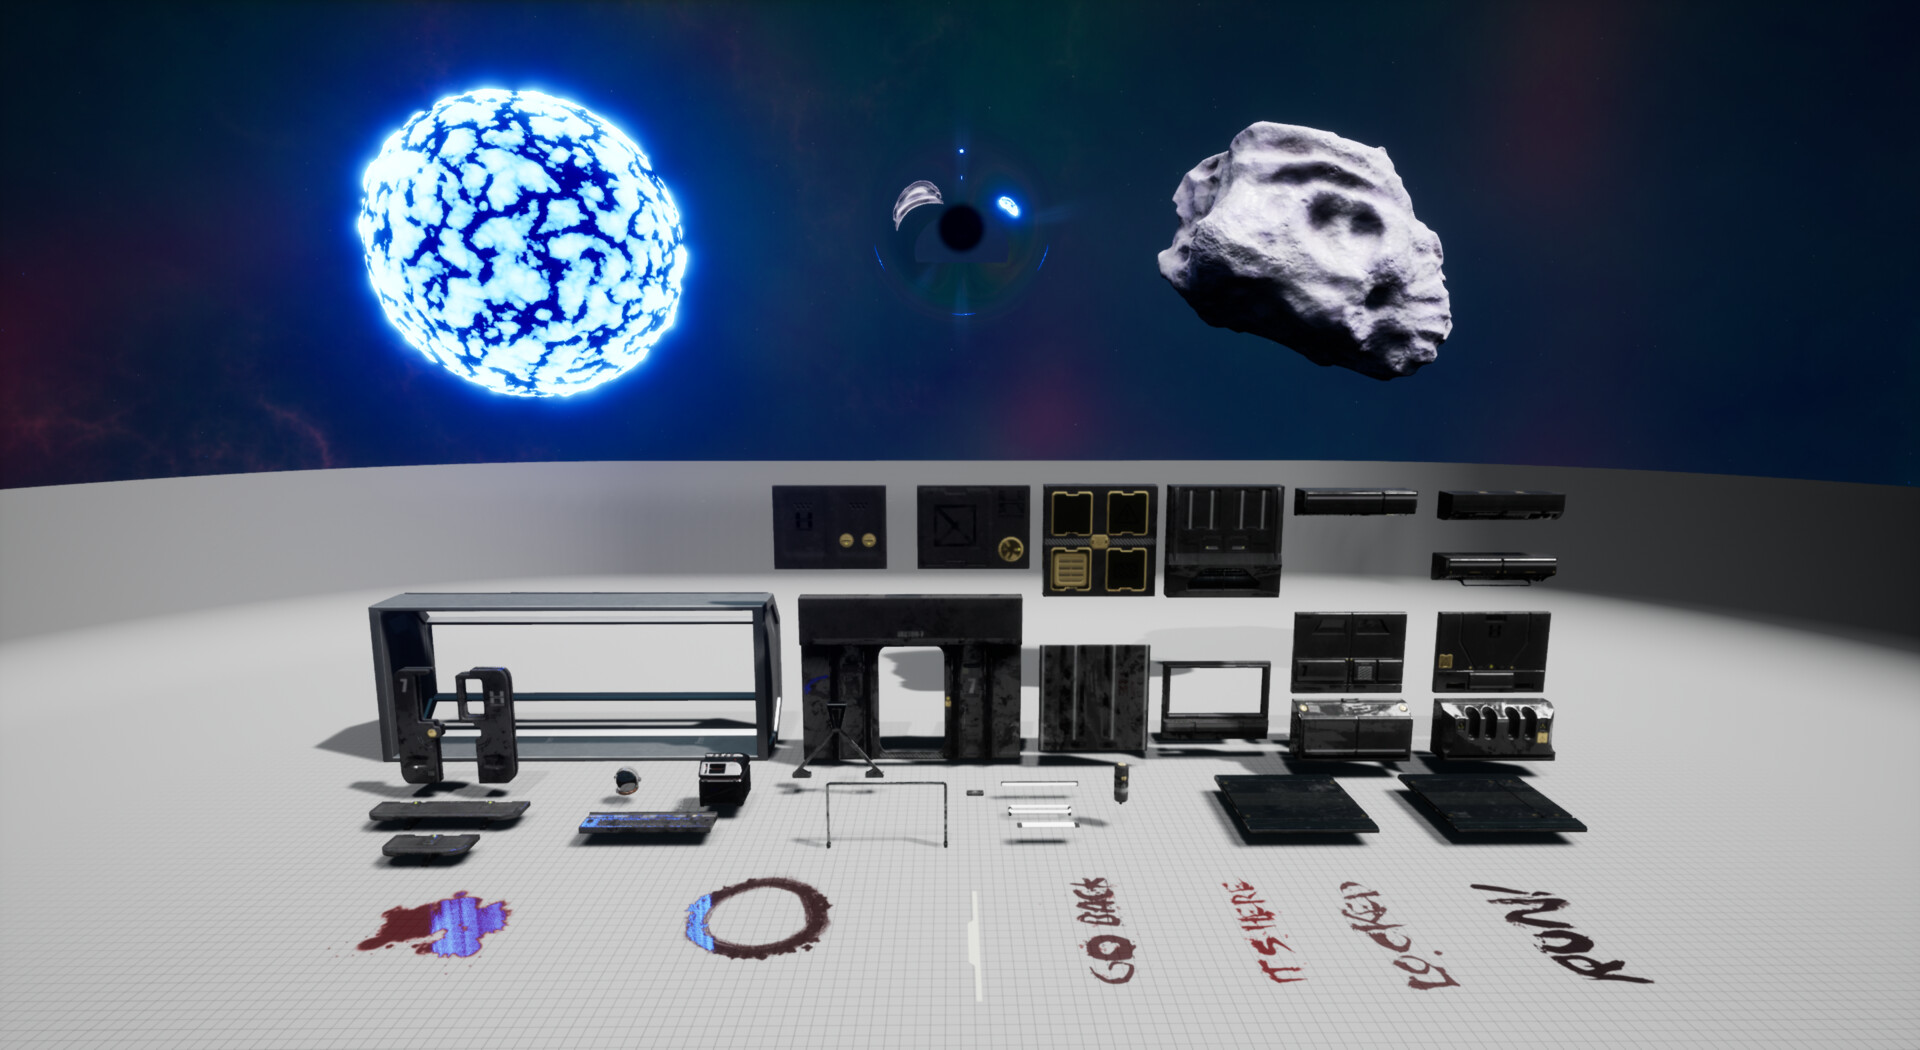 Assets Overview (33 static meshes, 13 Materials, 10 custom decals, 5 new shaders, custom space skybox)